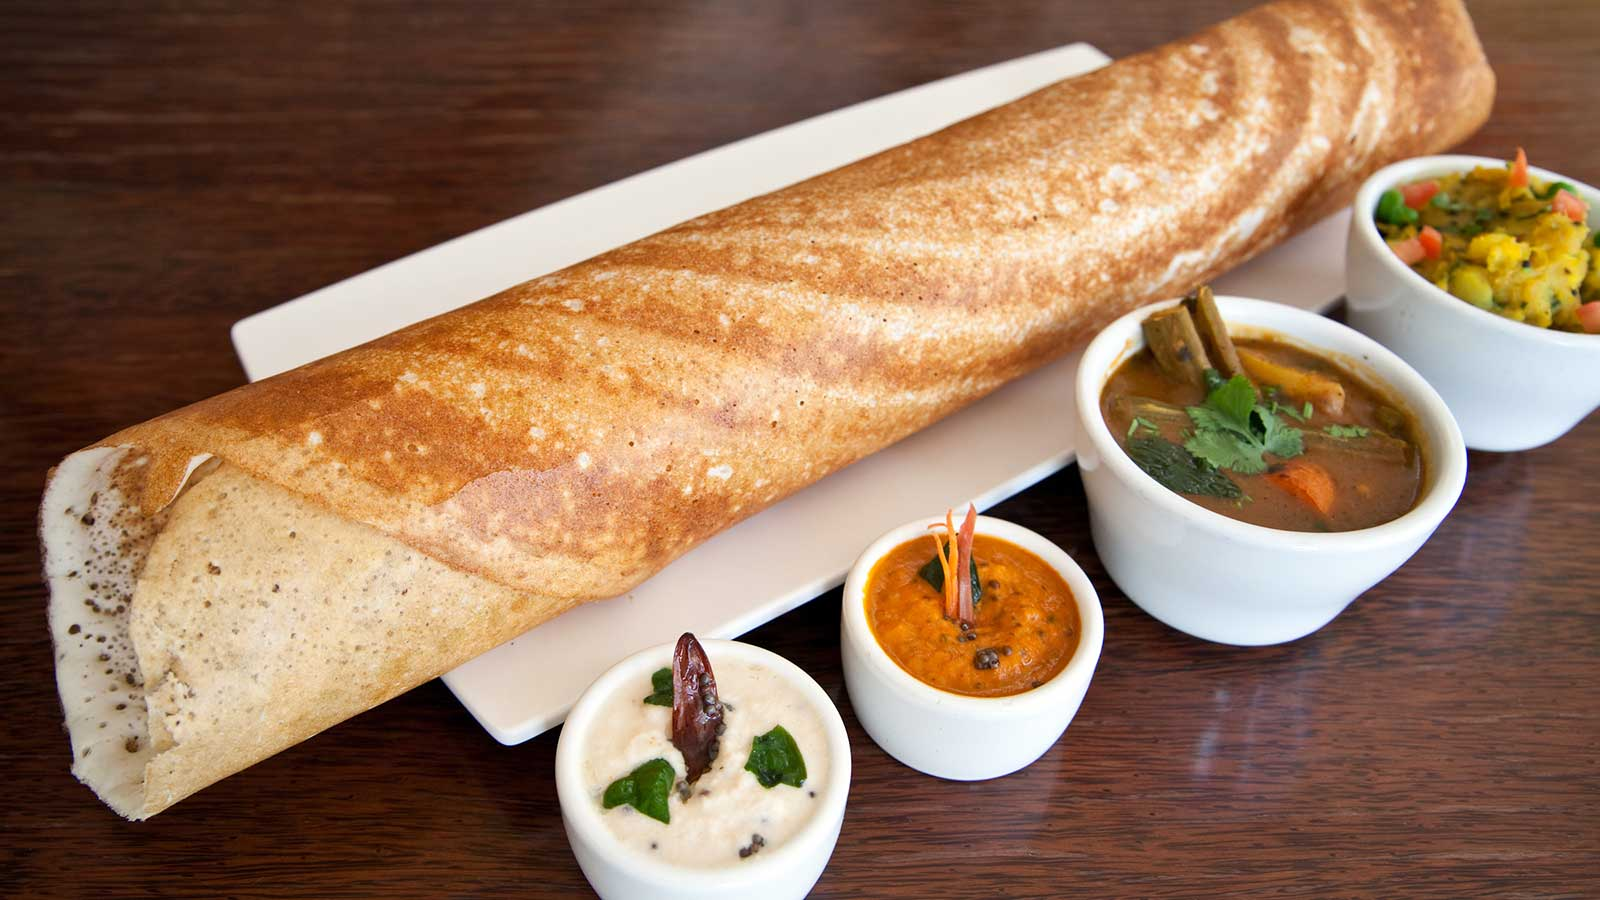 Varying levels of heat for this dosa can challenge wine, but a soft blend of Riesling and Sauvignon Blanc works well.